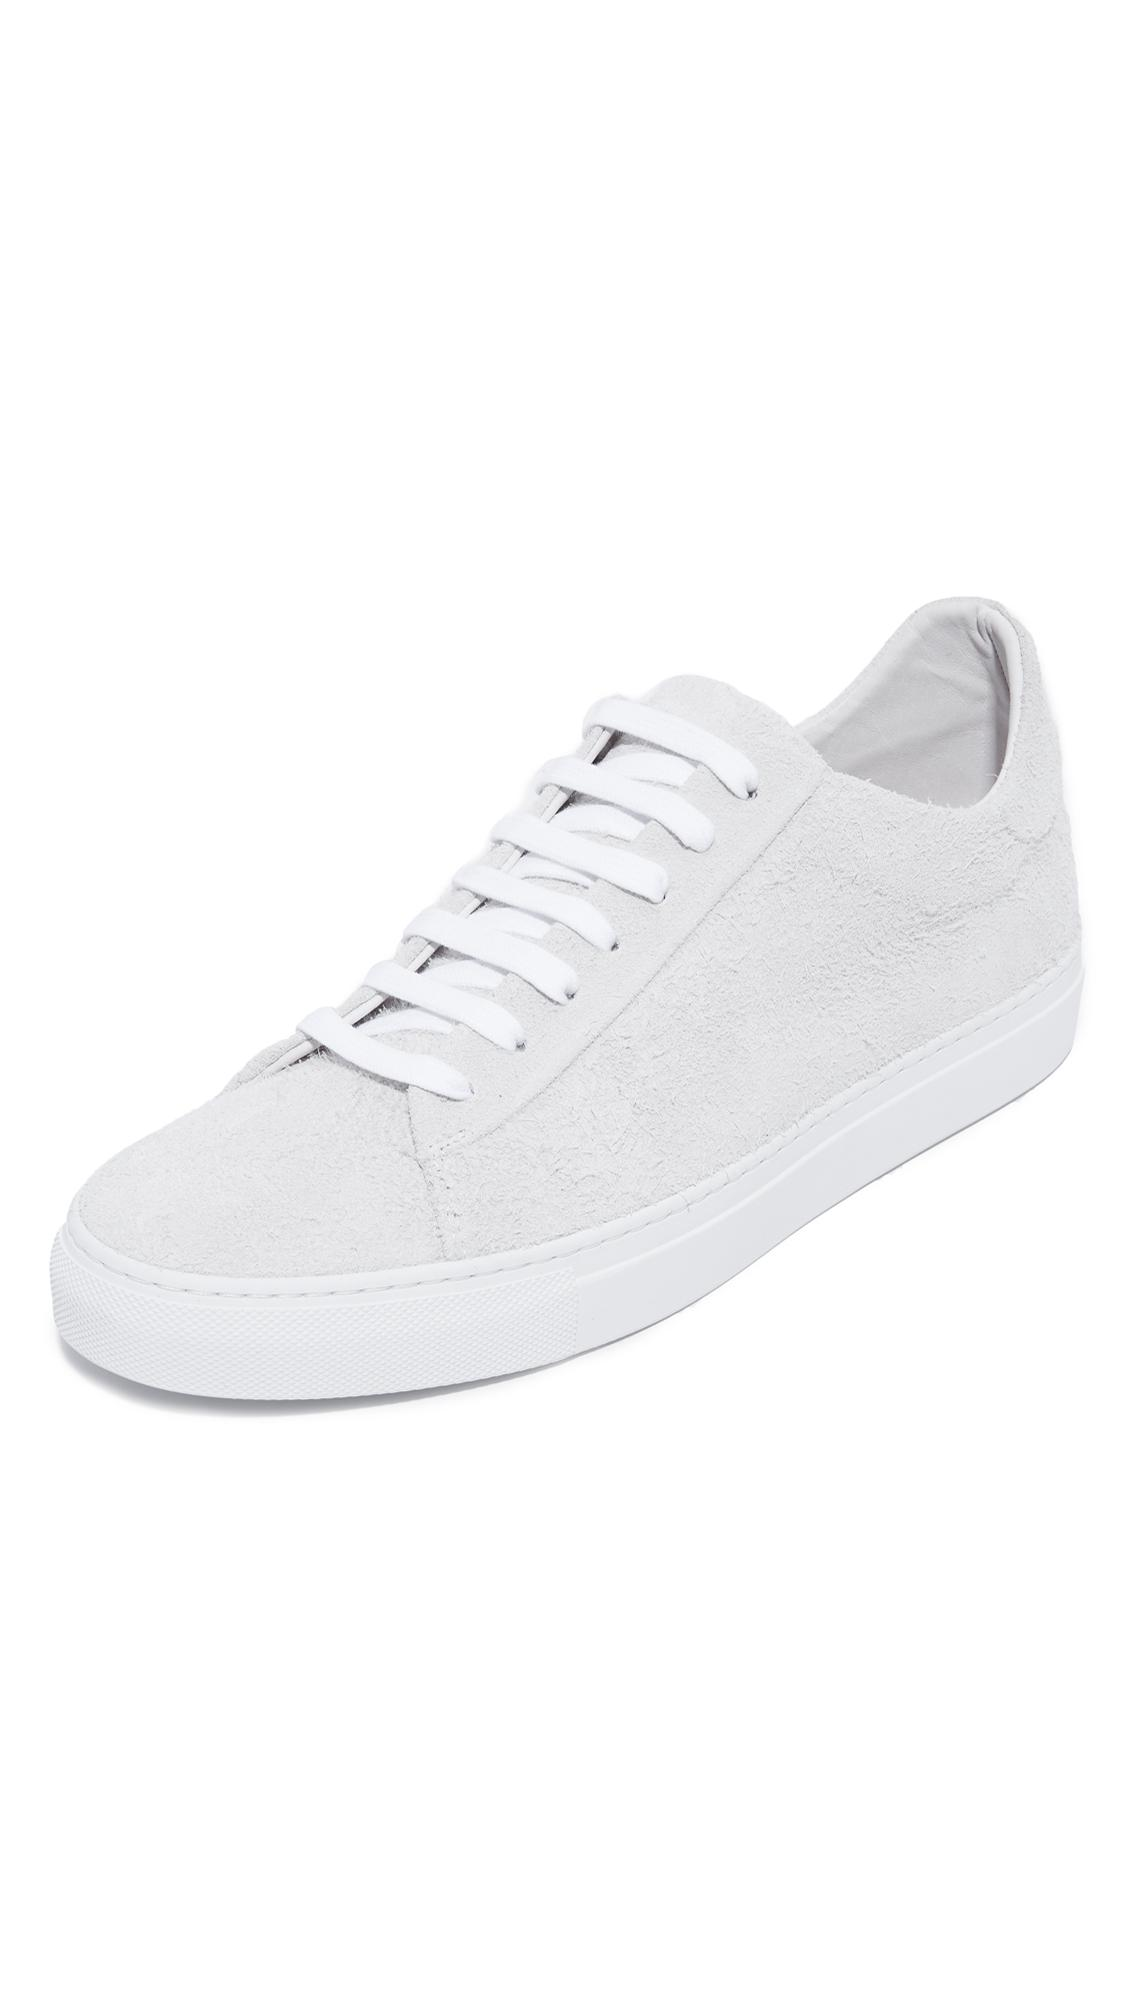 d142a8fbff Court Suede Low Sneakers in White